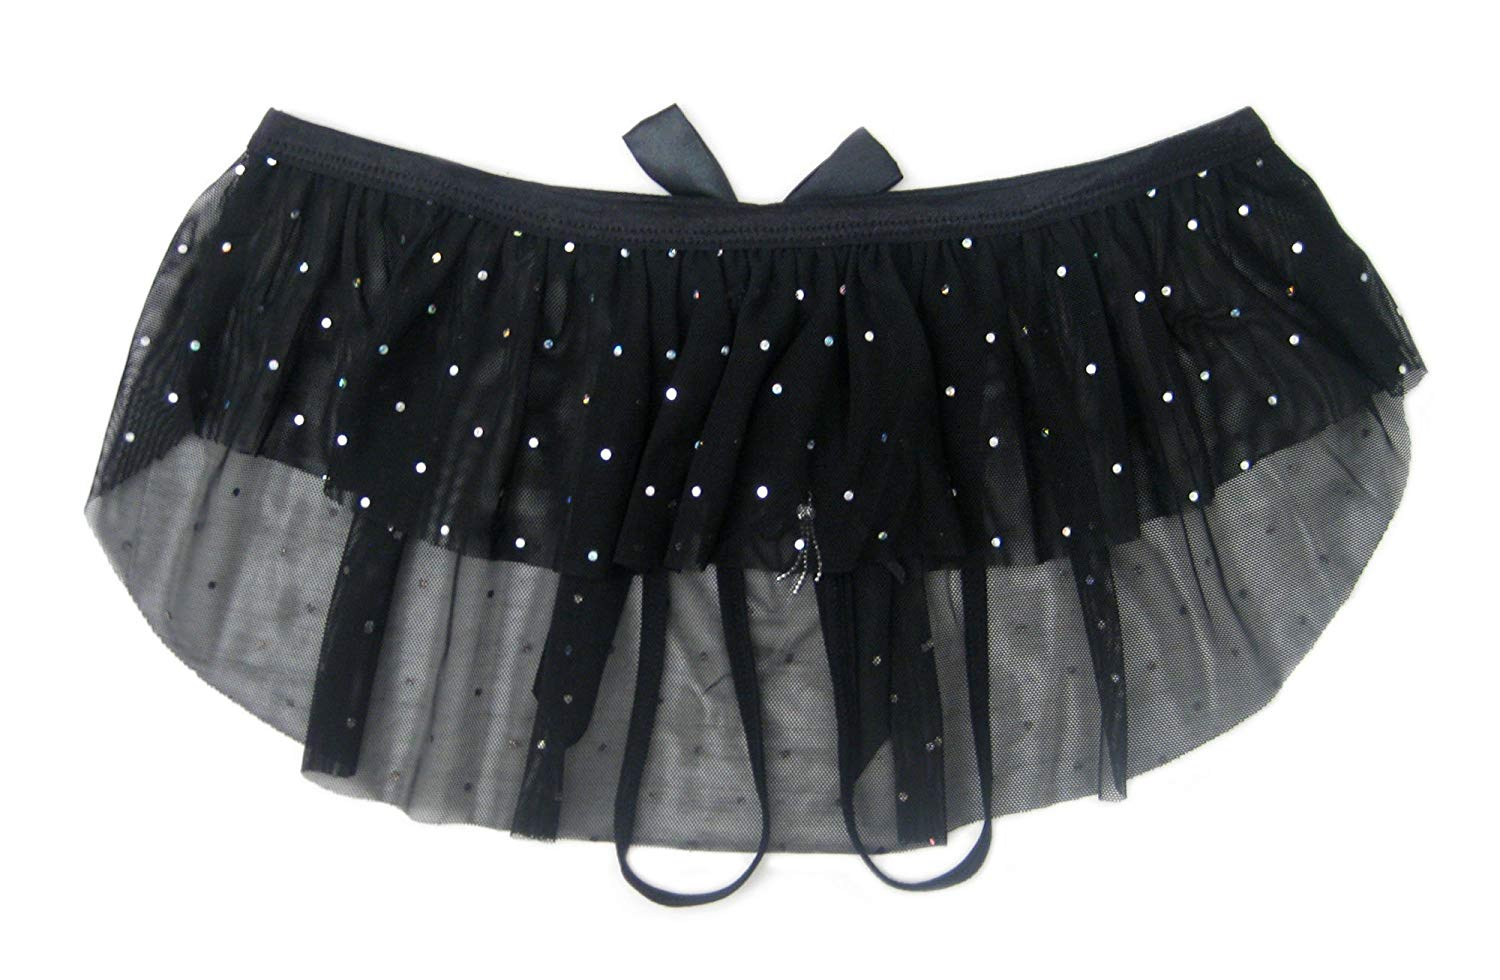 5995770b7136 Trixx Intimates Women's Sparkly Black Mesh Mini Skirt Open Crotch Thong